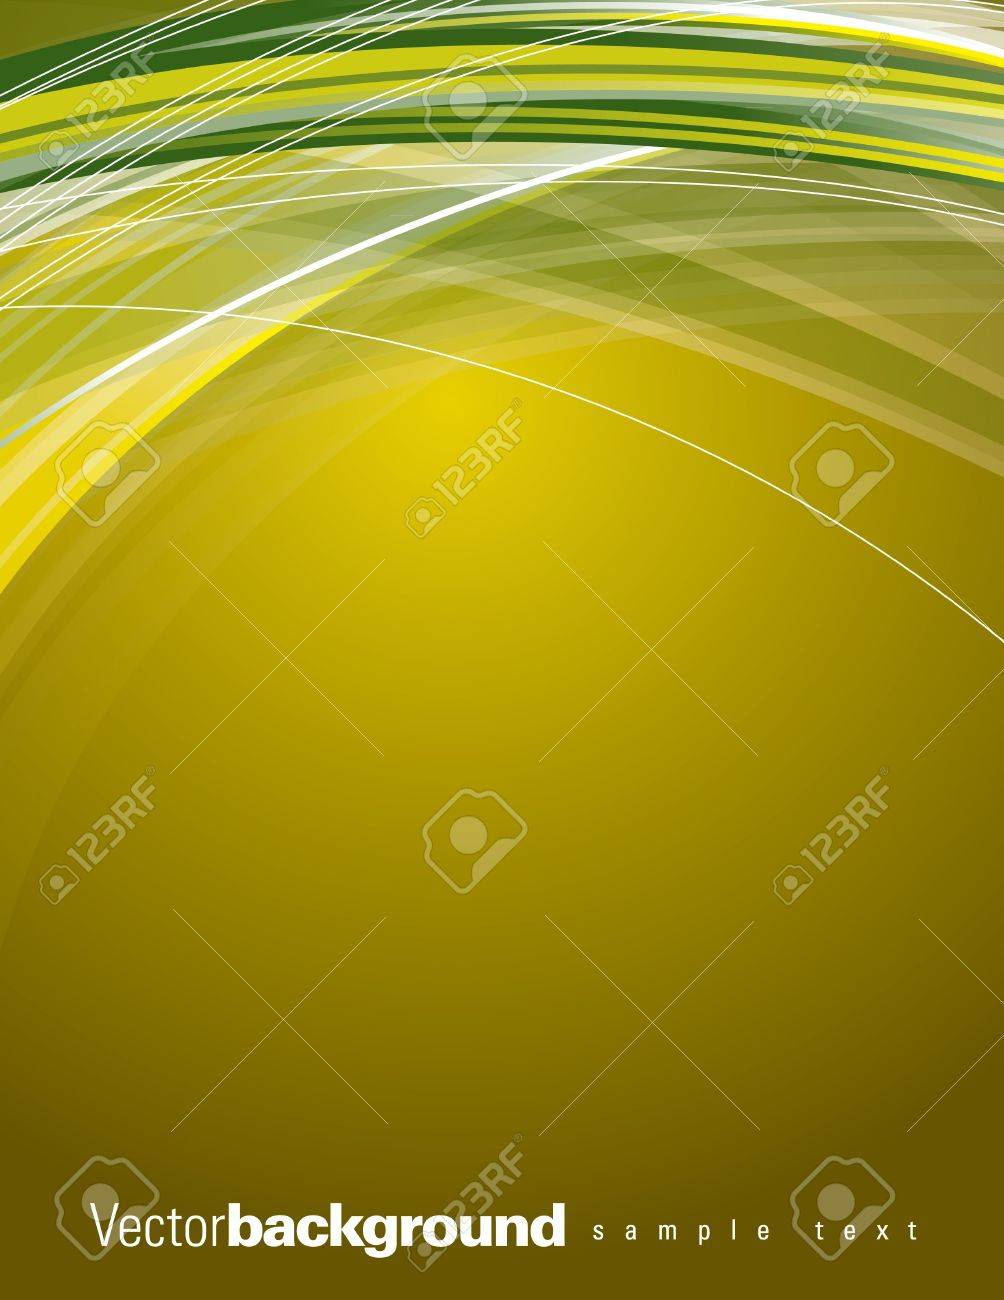 Abstract Vector Background Stock Vector - 13107061